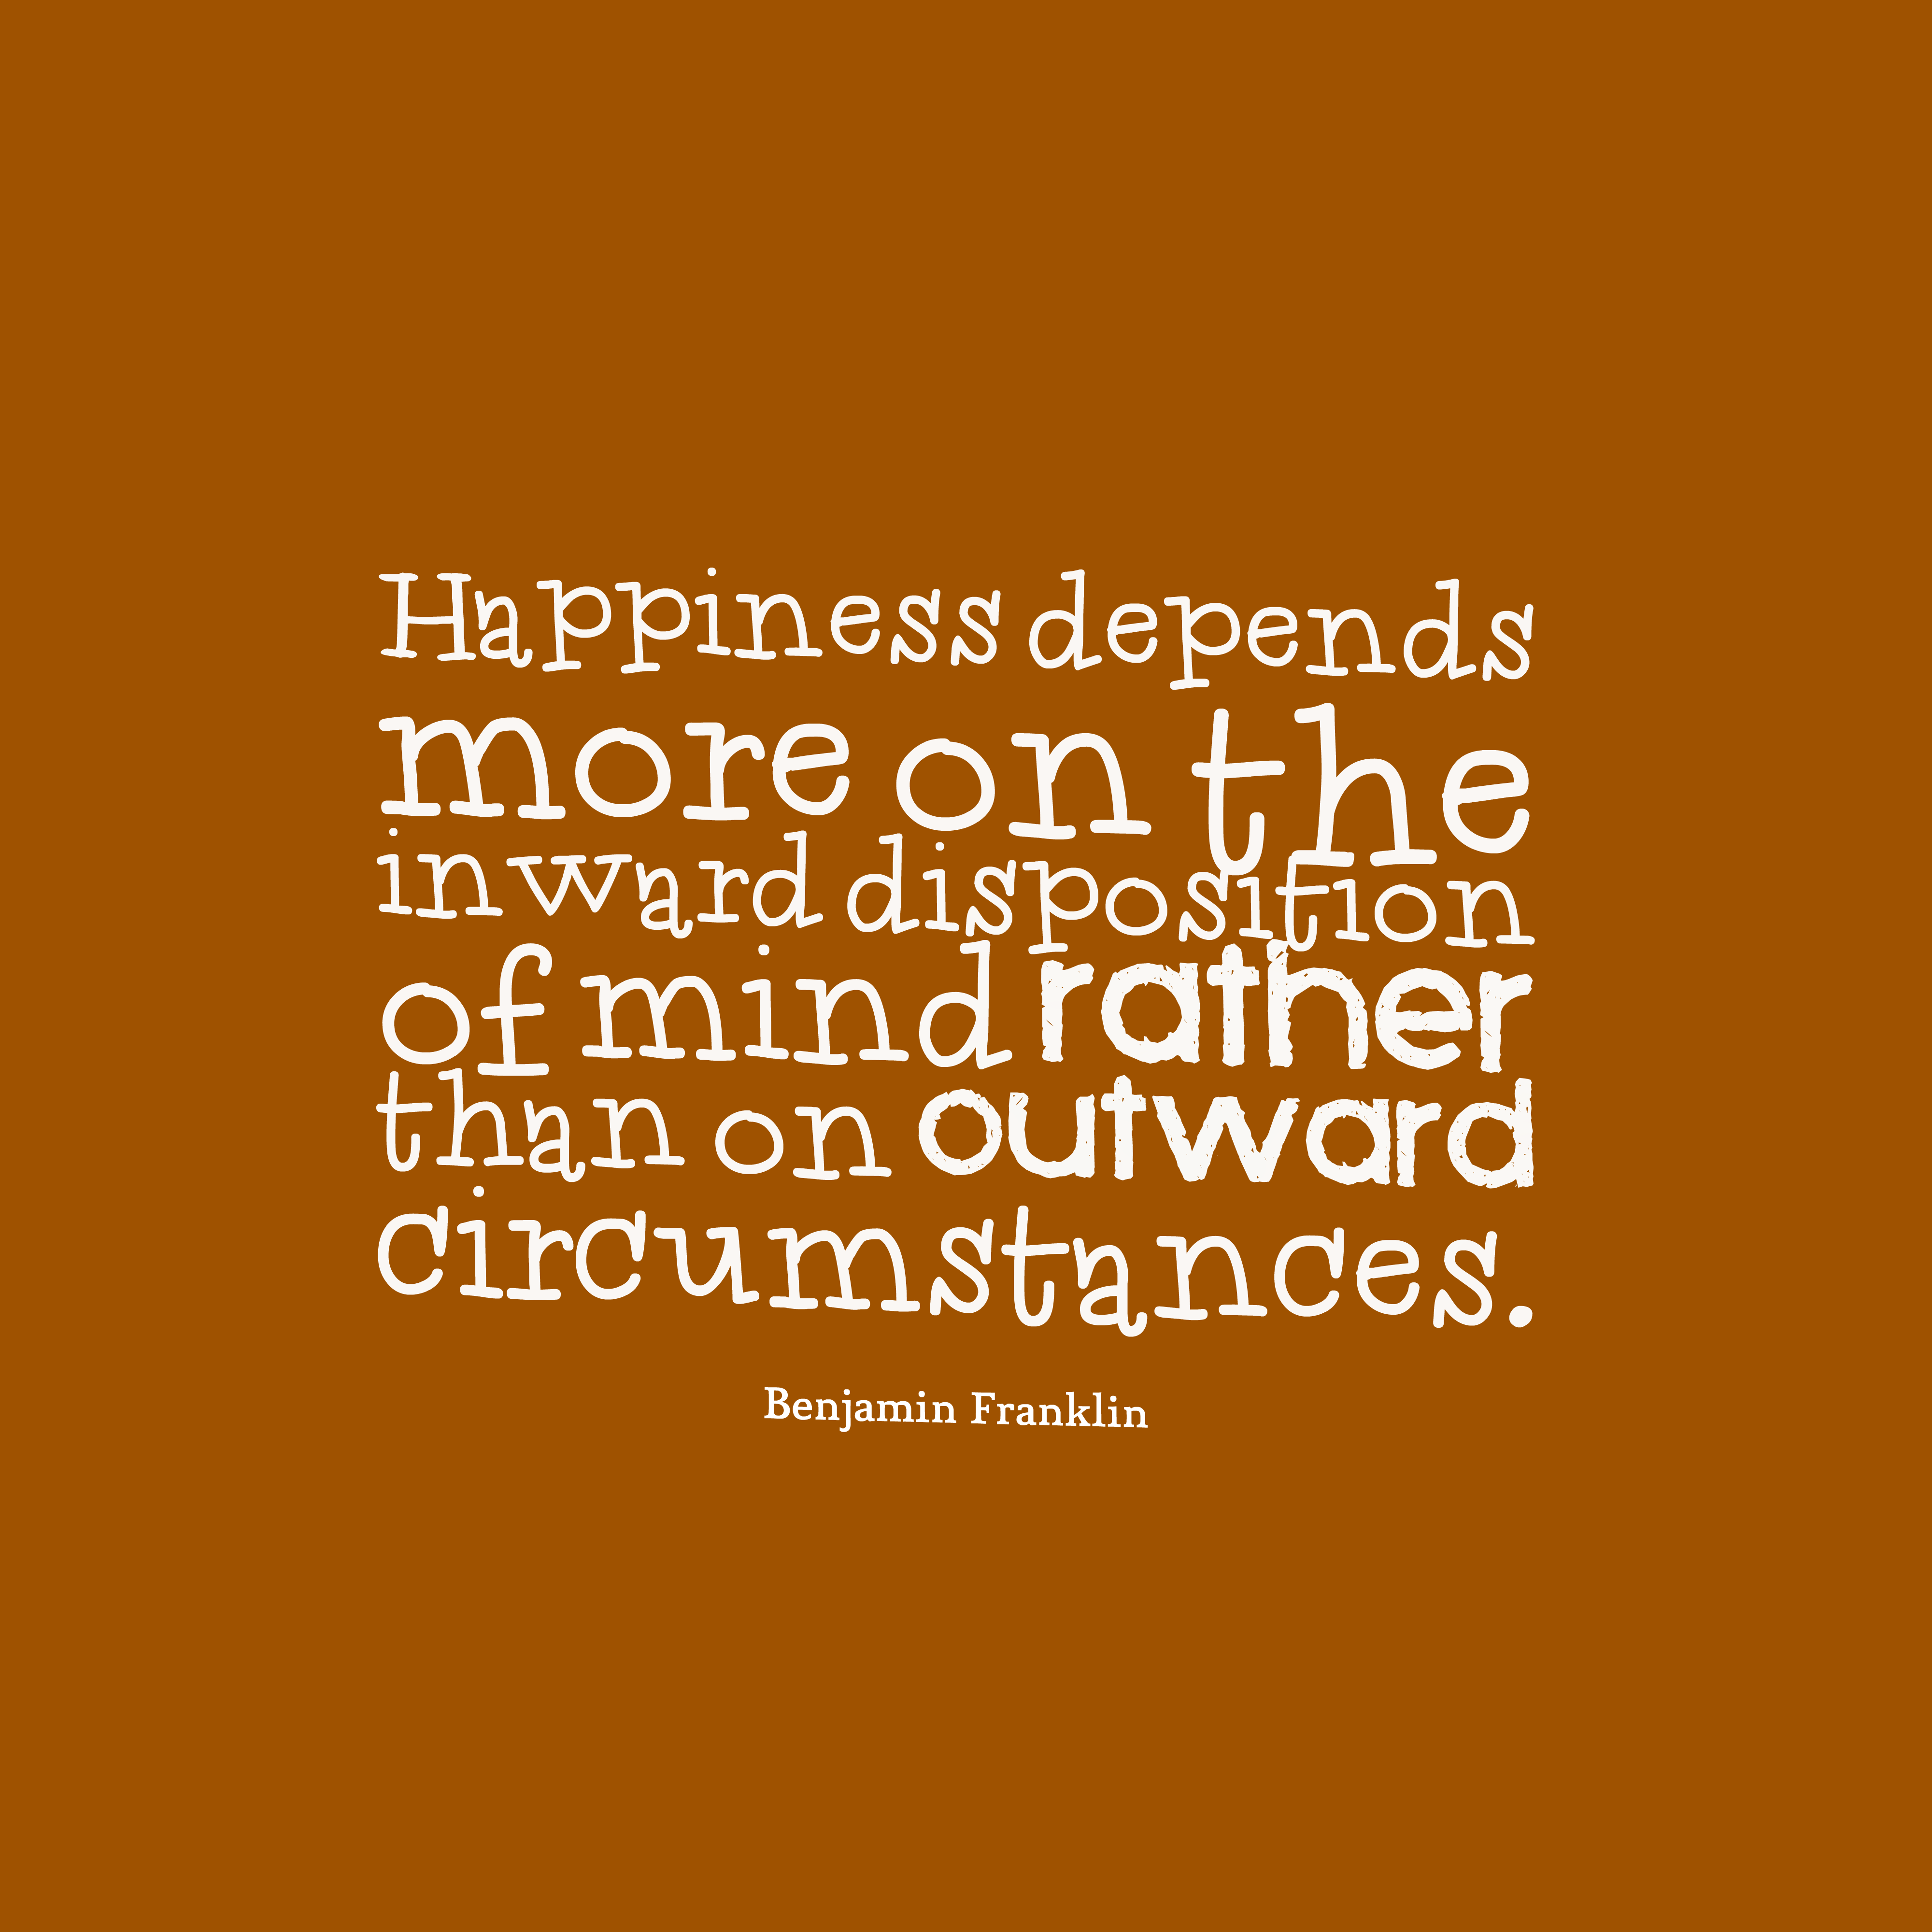 Quotes image of Happiness depends more on the inward disposition of mind rather than on outward circumstances.